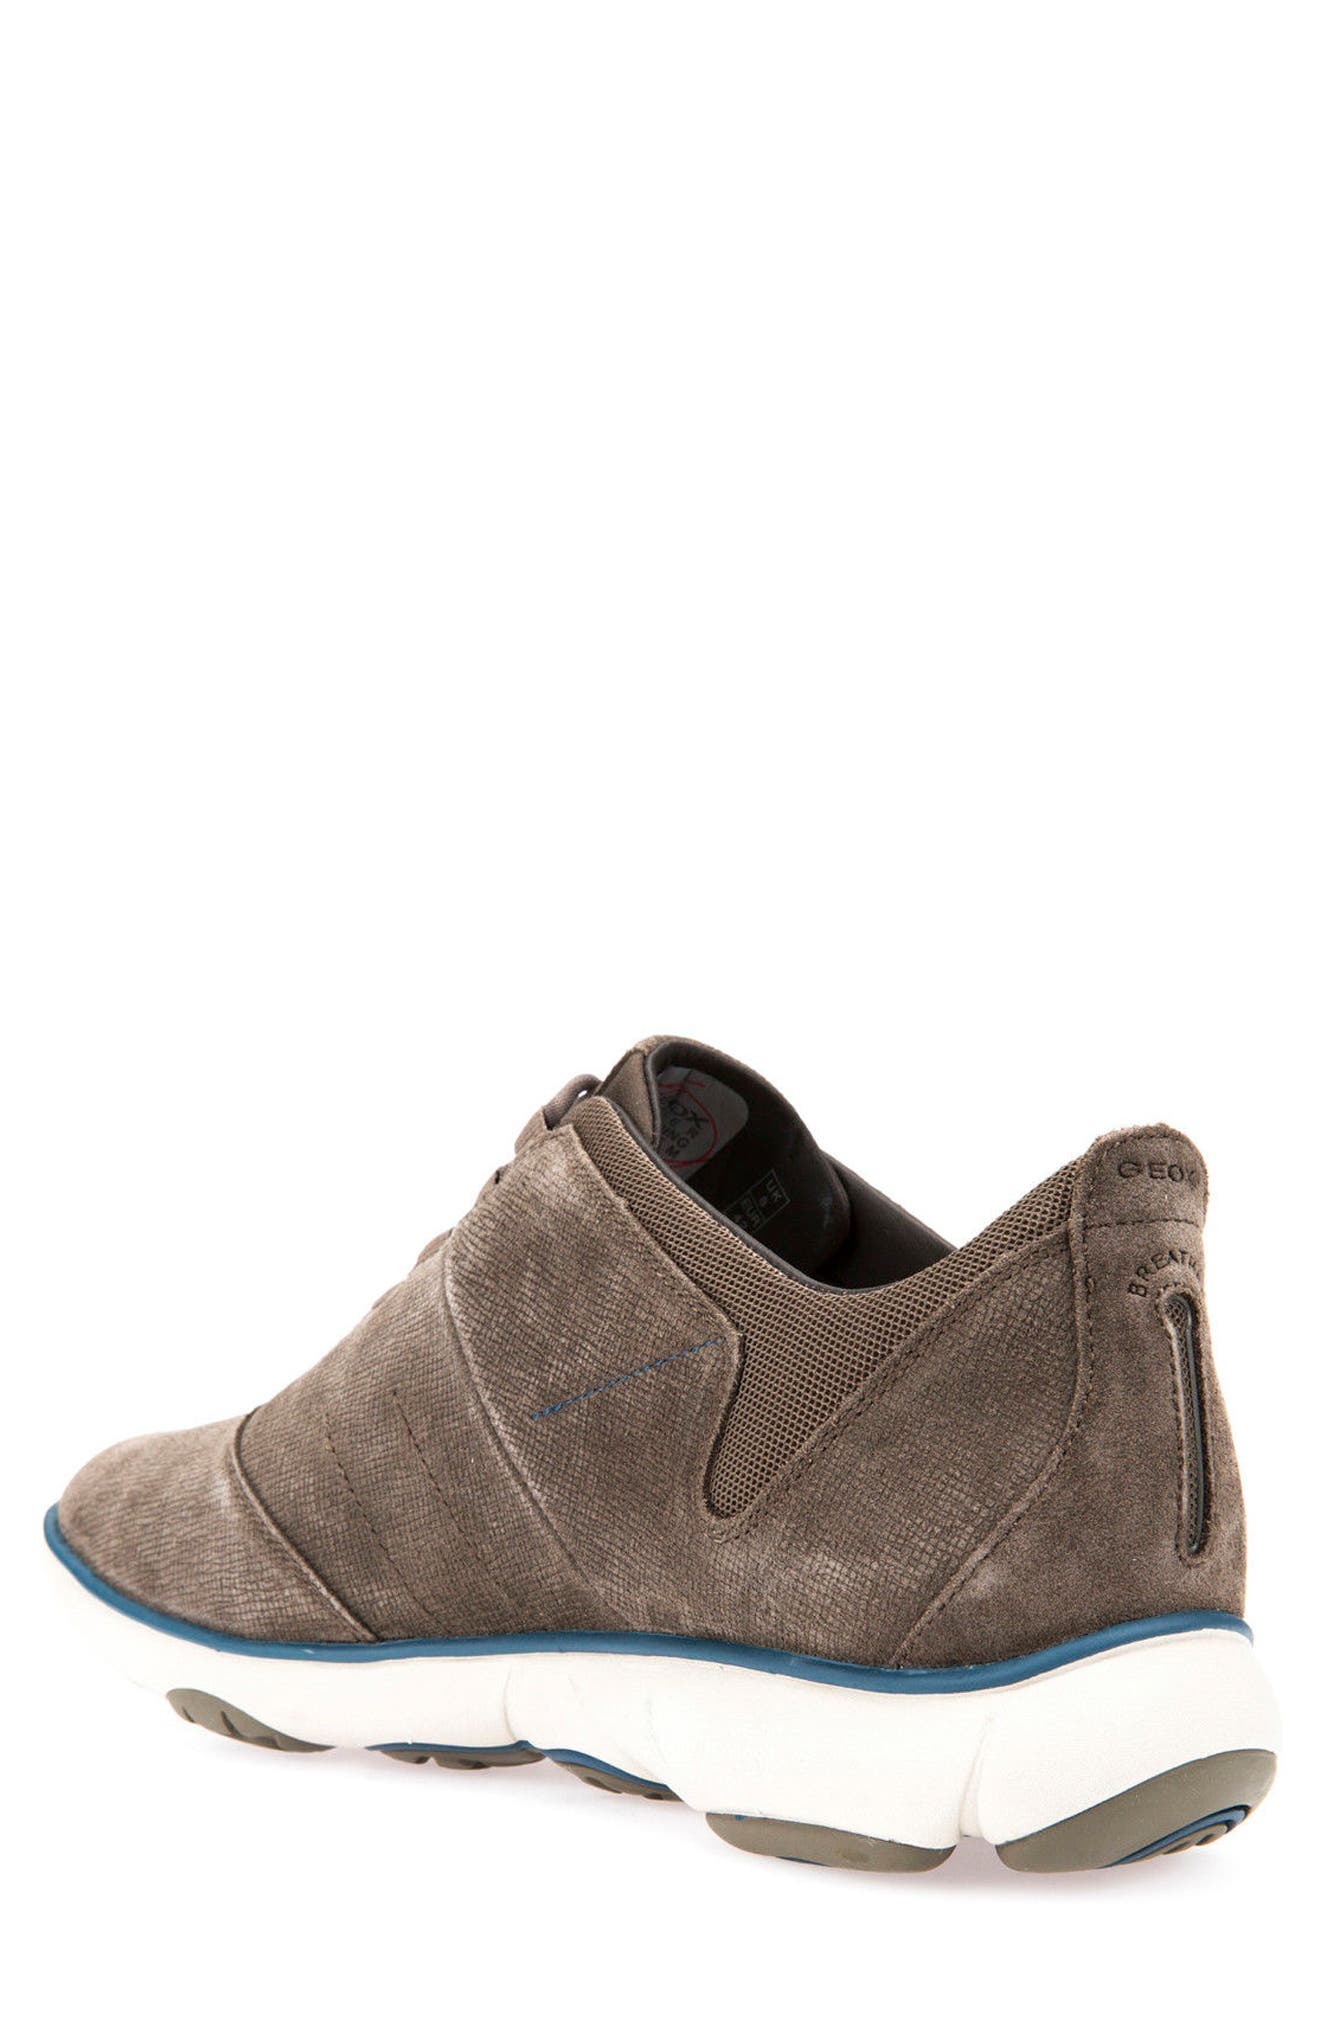 Nebula Slip-On,                             Alternate thumbnail 2, color,                             TAUPE